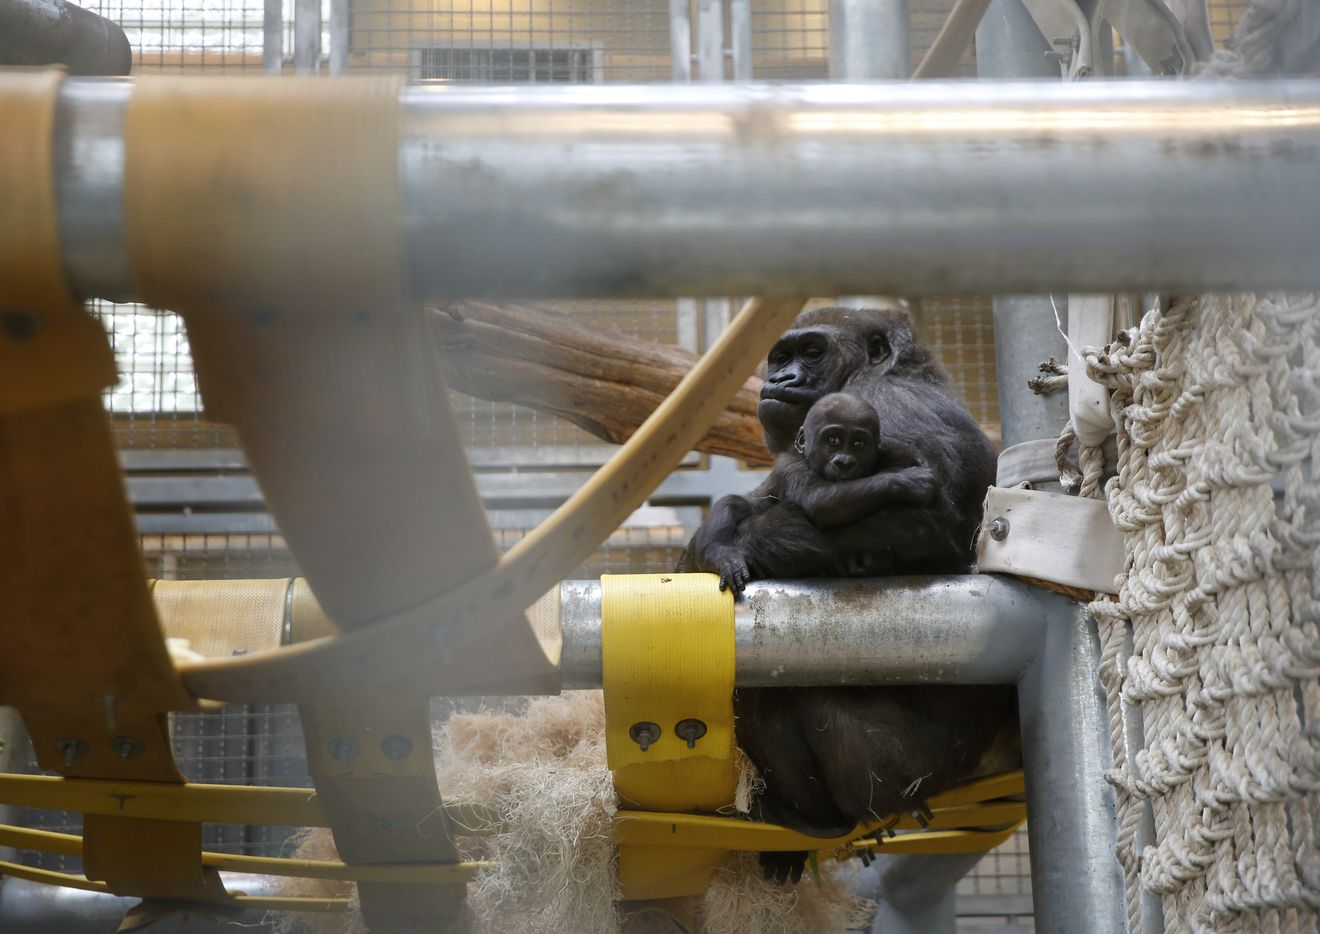 Hope, a western lowland gorilla, holds her daughter 7-month-old Saambili in a heated behind-the-scenes gorilla building at the Dallas Zoo.